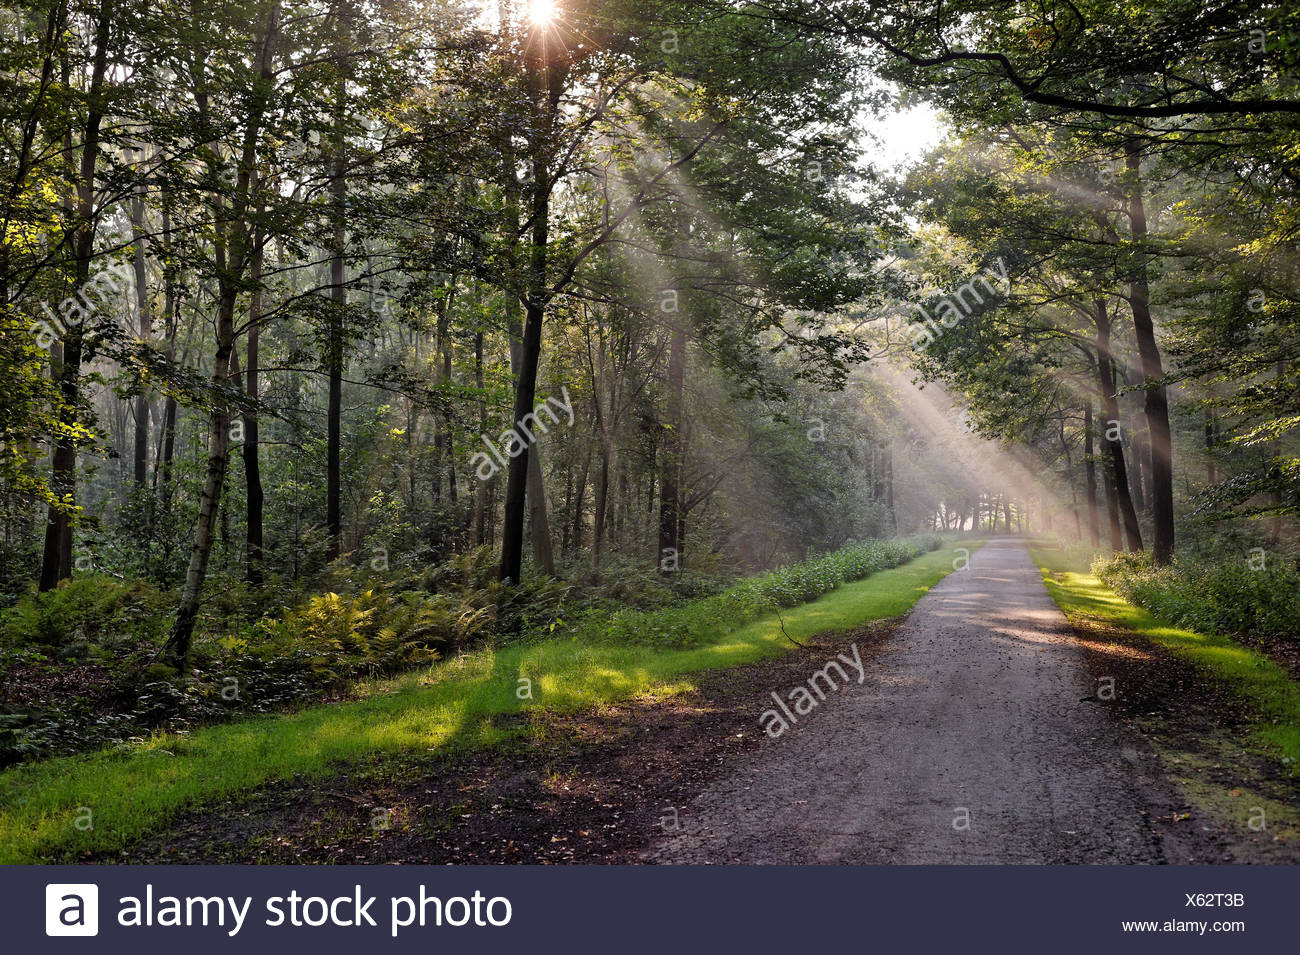 Germany, Lower Saxony, East Frisia, Rays of light in forest - Stock Image